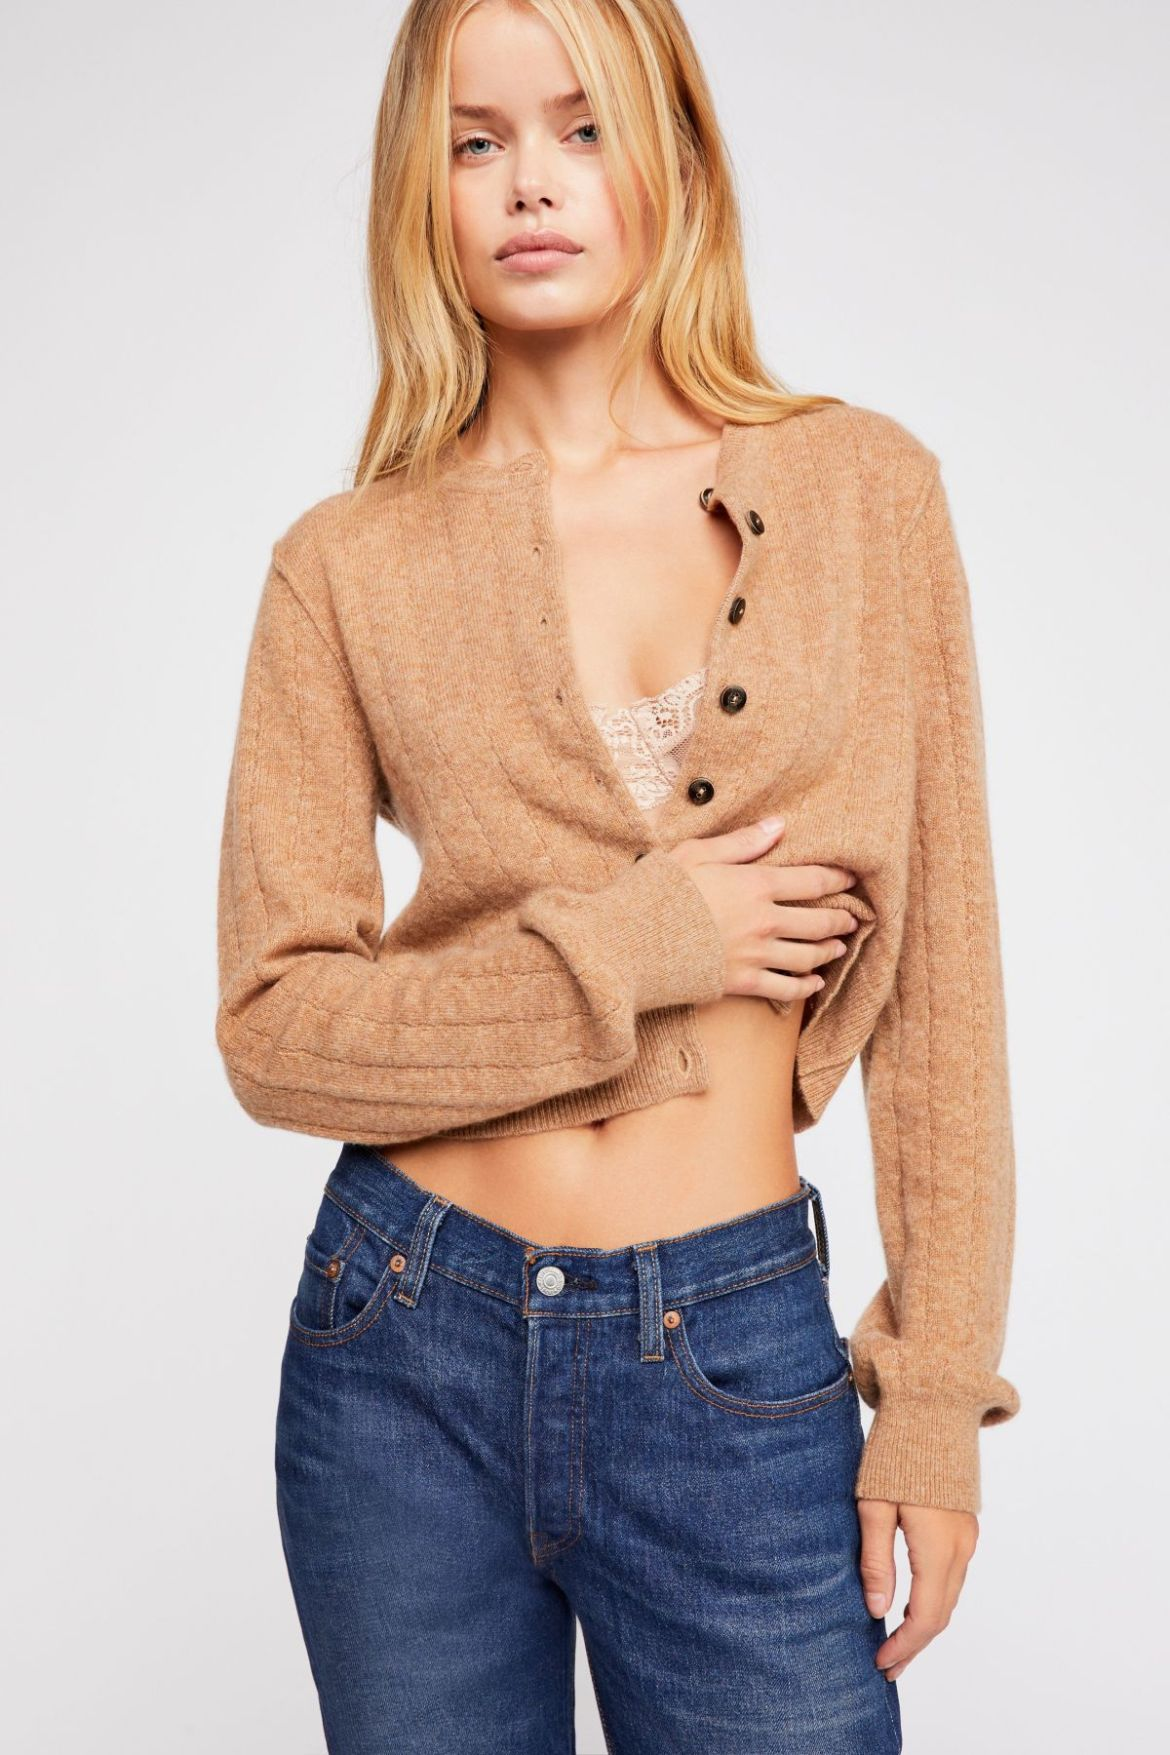 FRIDA AASEN for Free People, Fall 2018